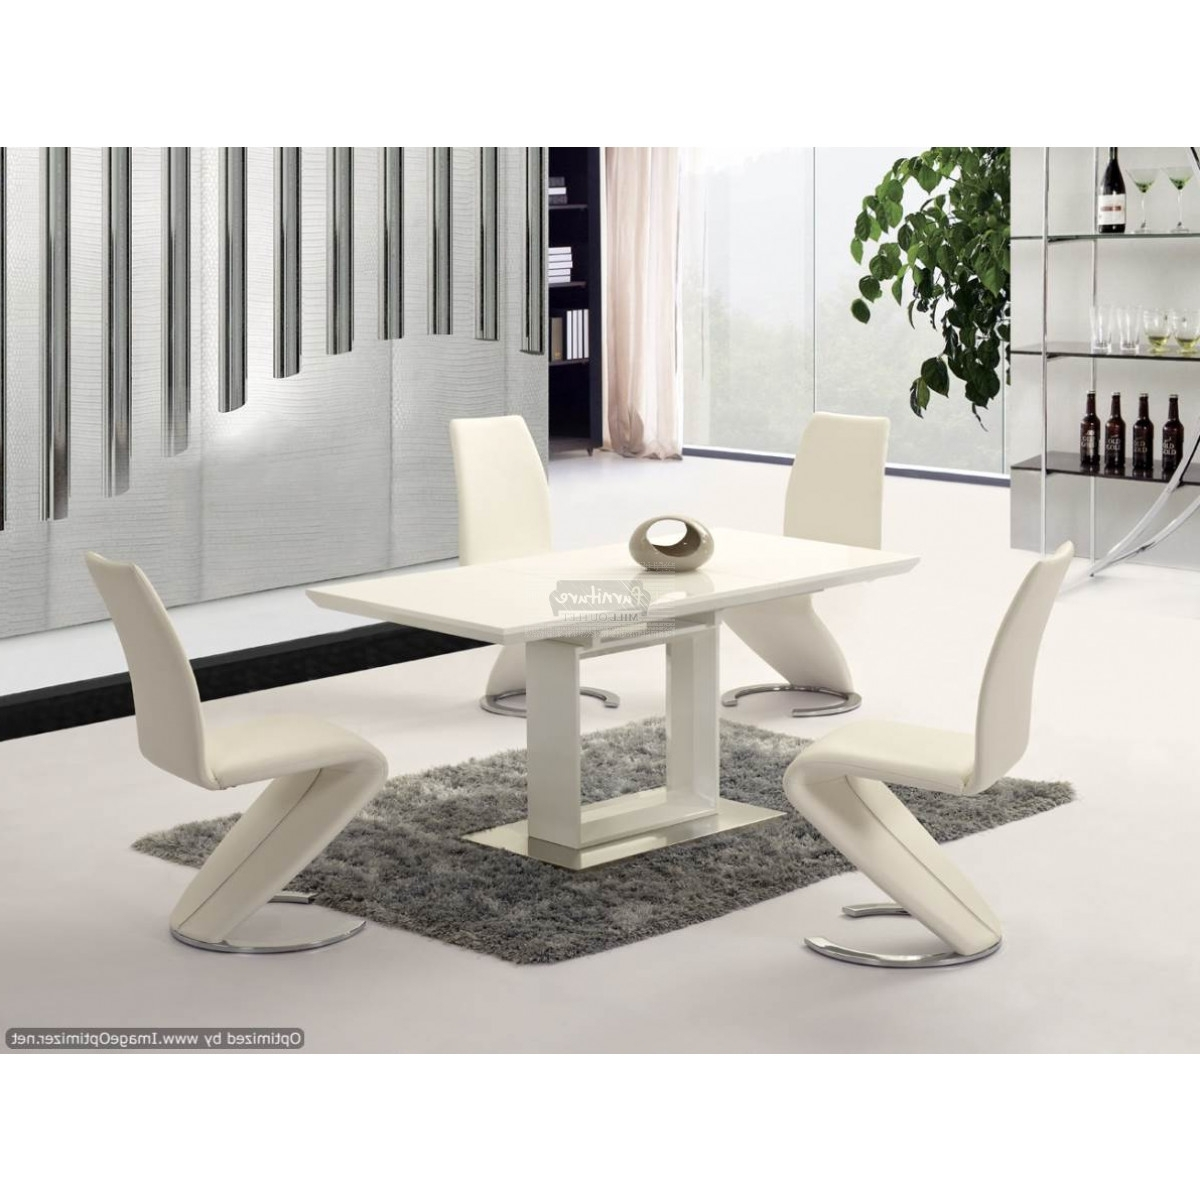 White Gloss Dining Furniture Within Well Liked Space White High Gloss Extending Dining Table – 120Cm To 160Cm (View 23 of 25)